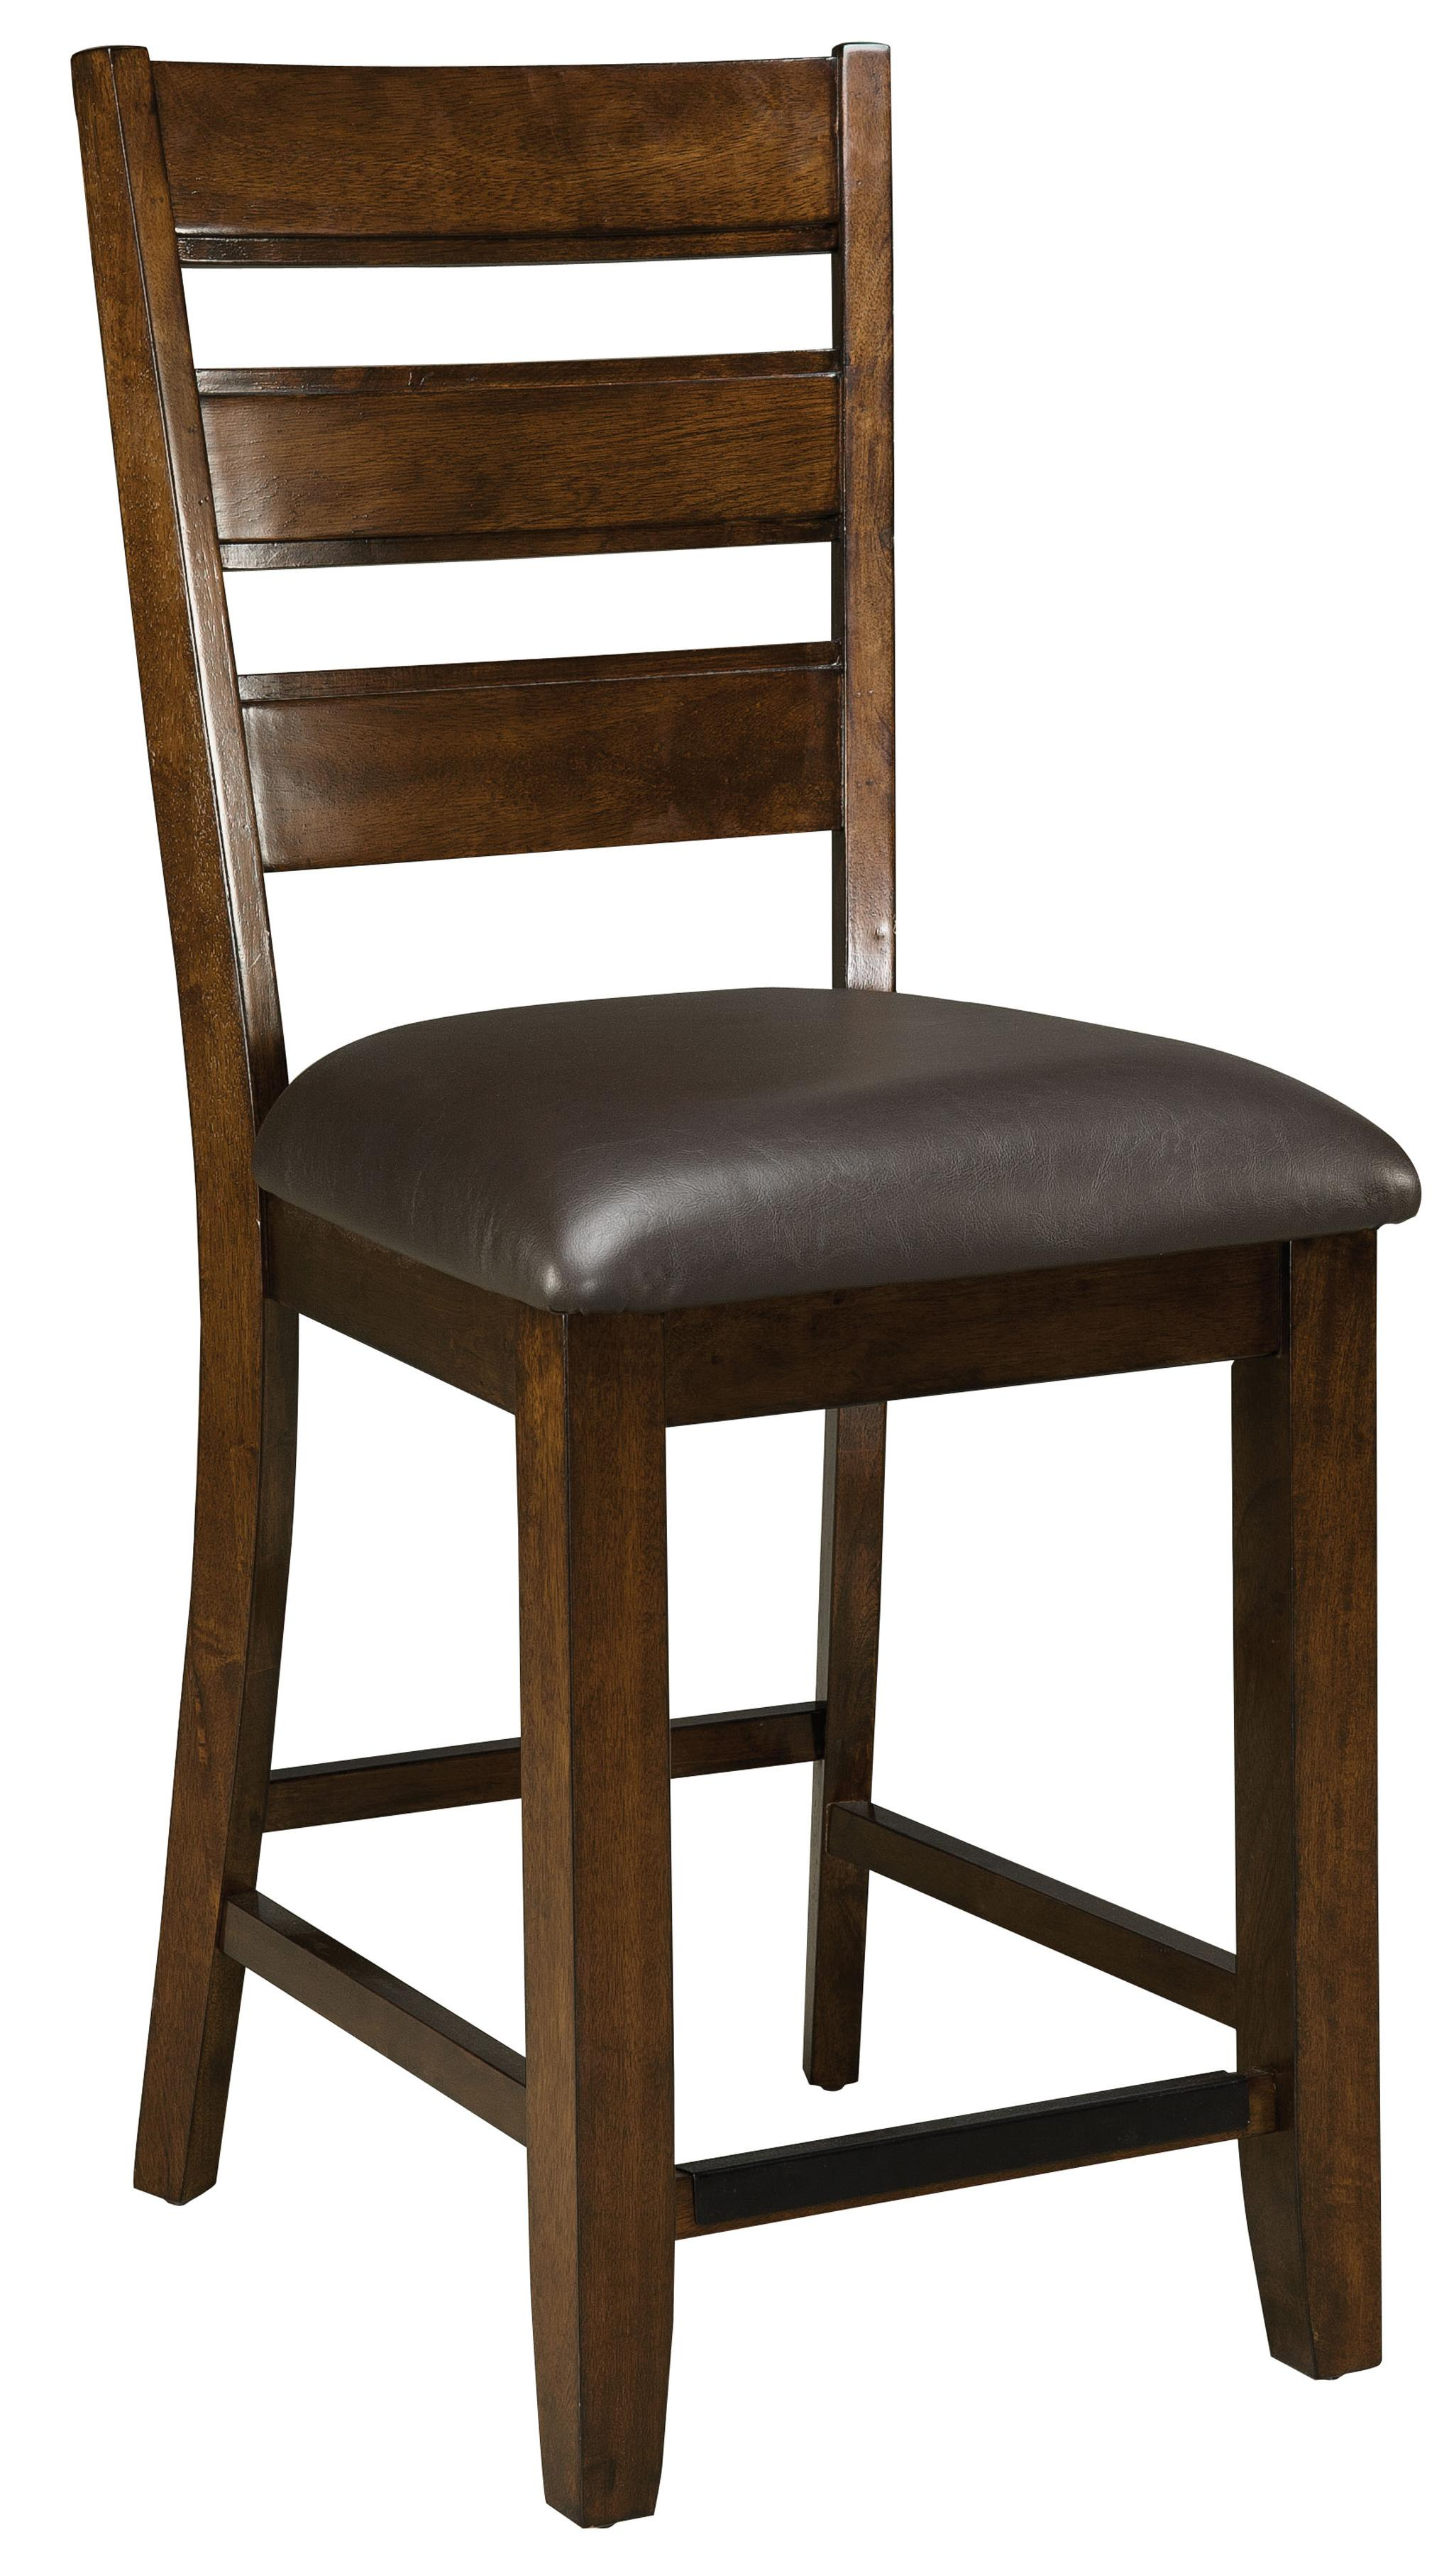 Standard Furniture Abaco Counter Stool - Item Number: 18934